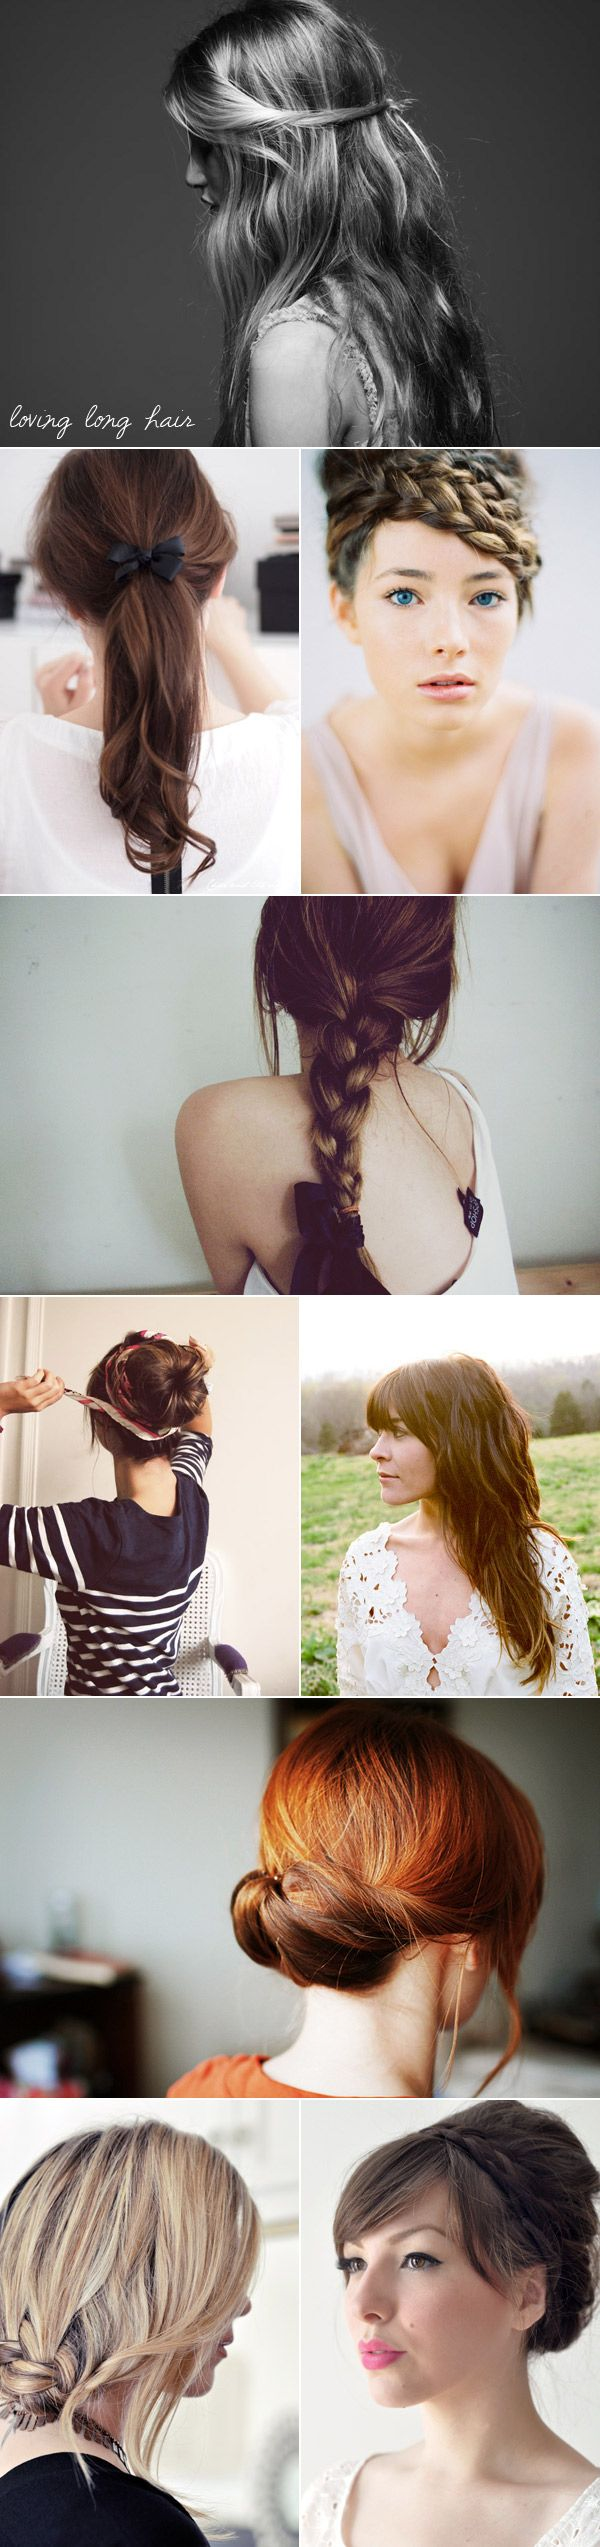 Long Curly Hair Styles, Some With Flowers